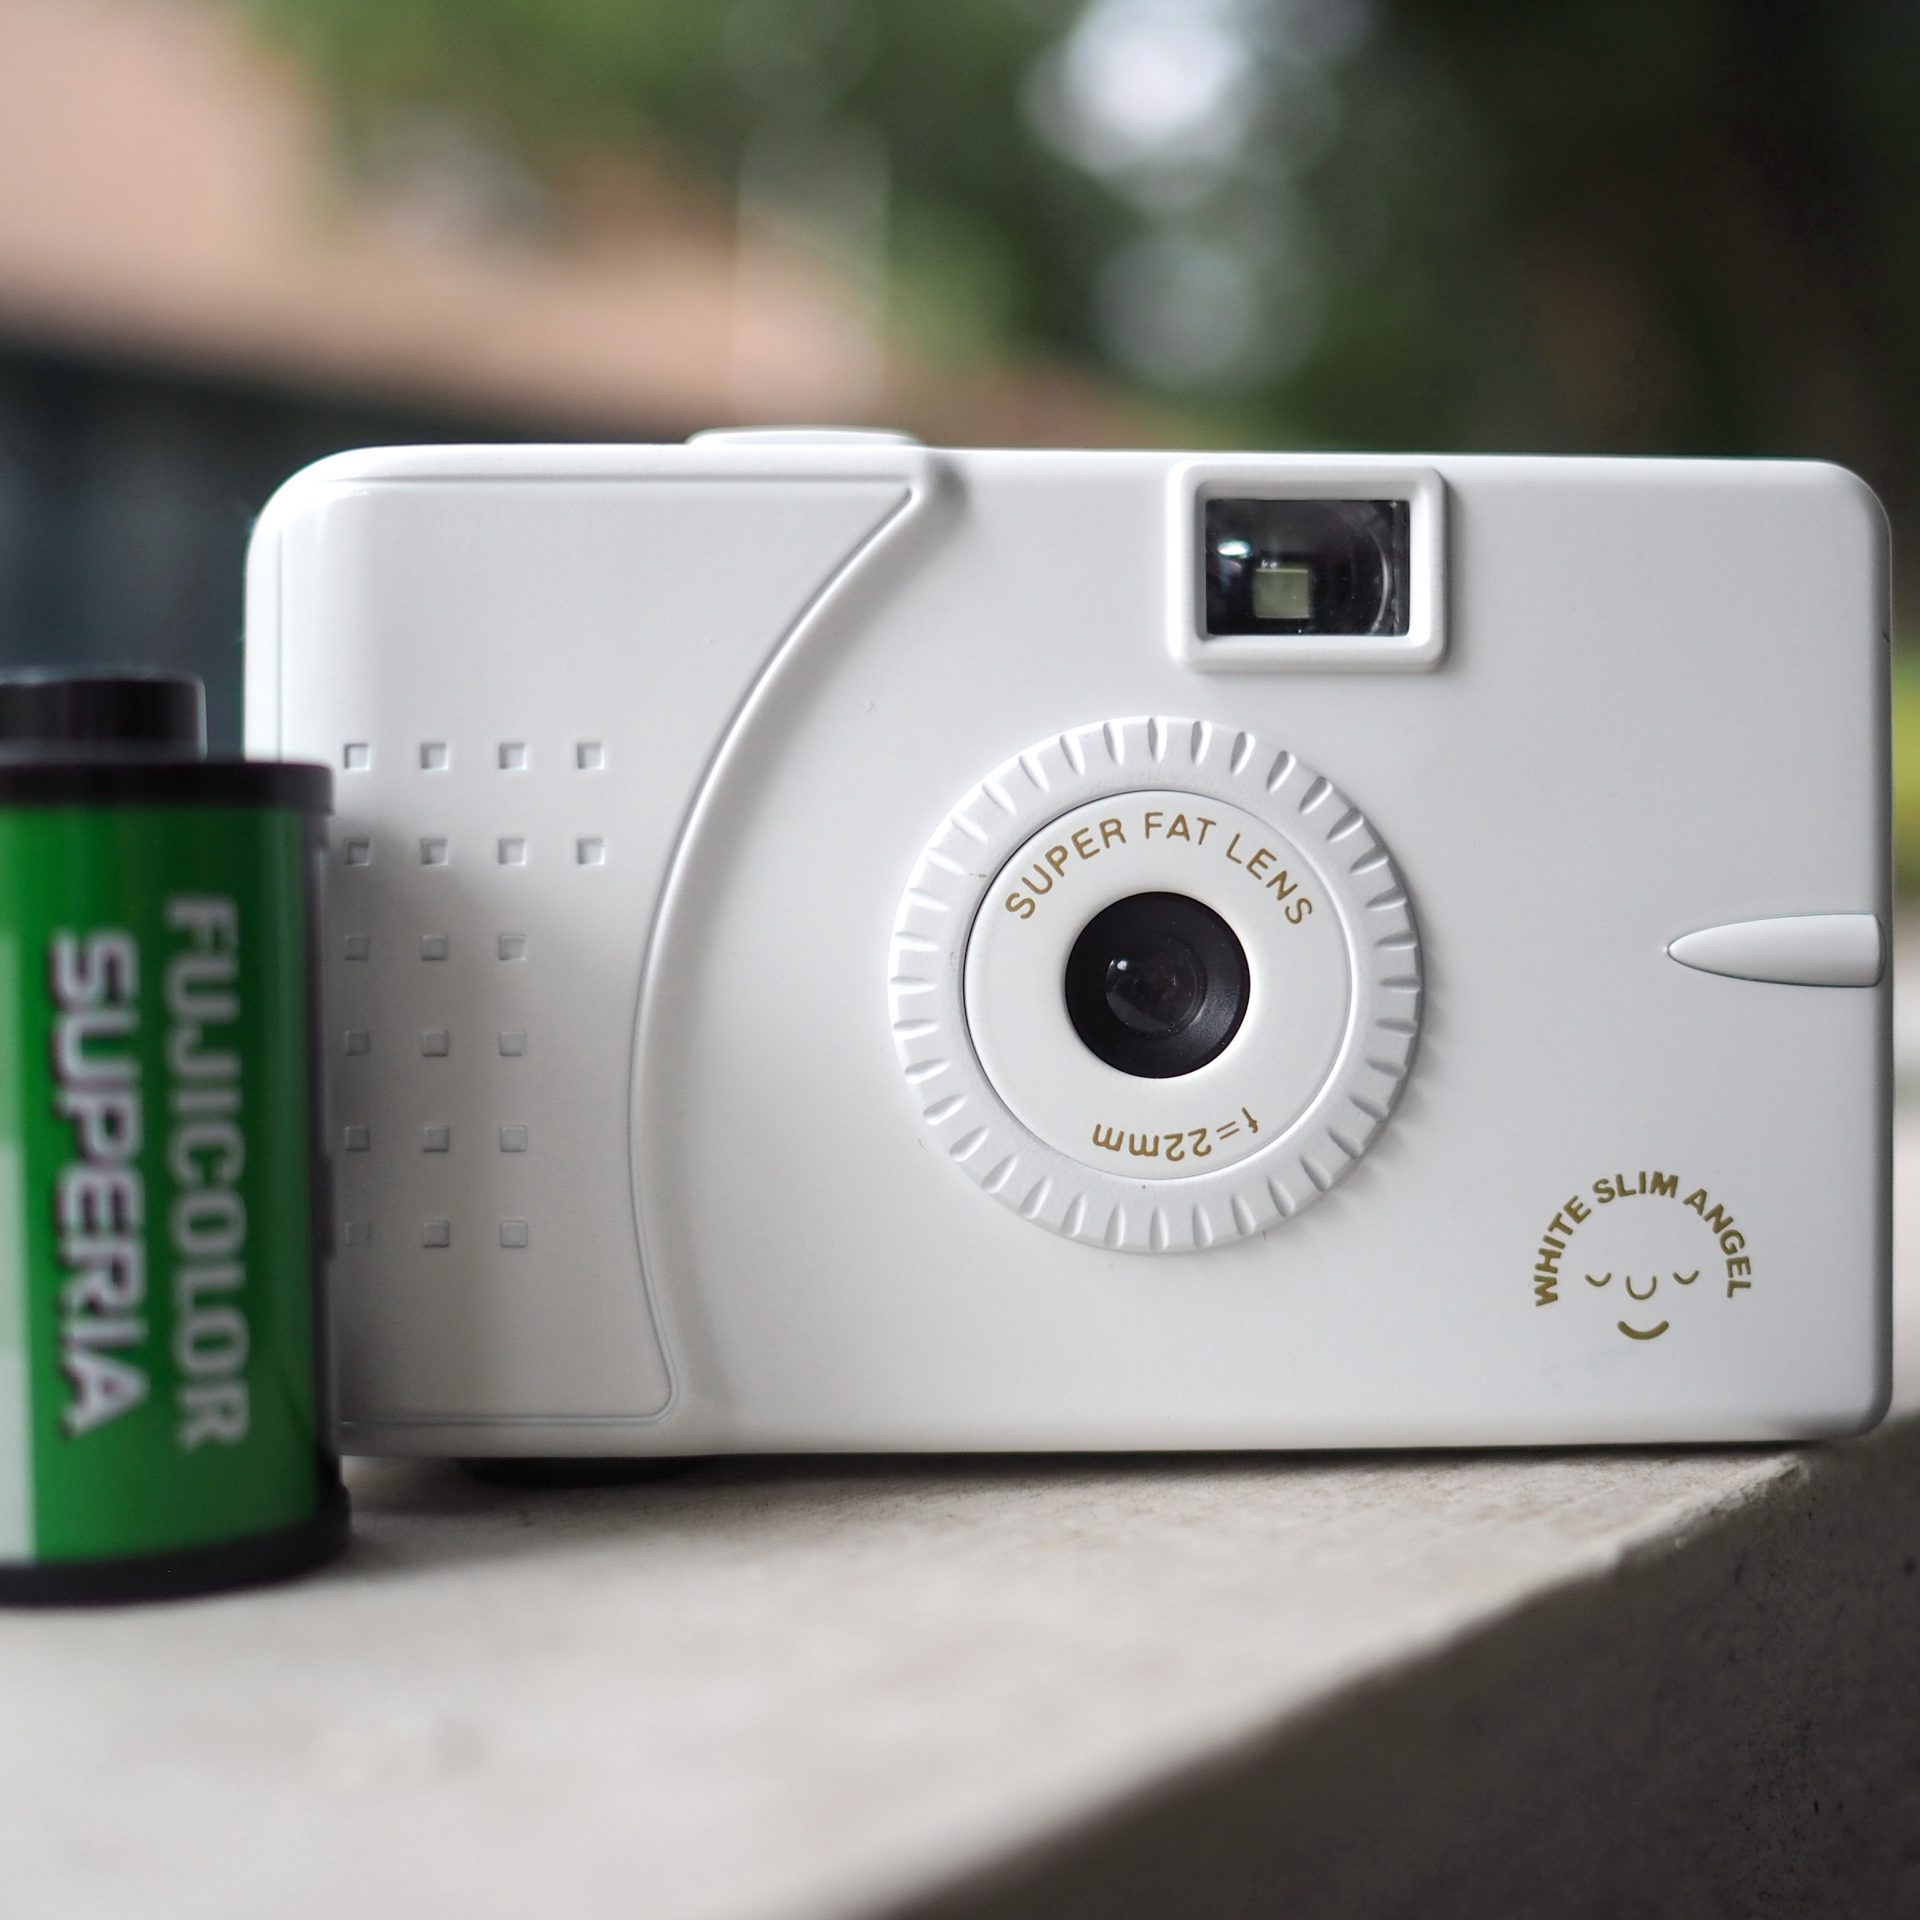 White Slim Angel 35mm film point and shoot plastic camera with roll of Fuji film